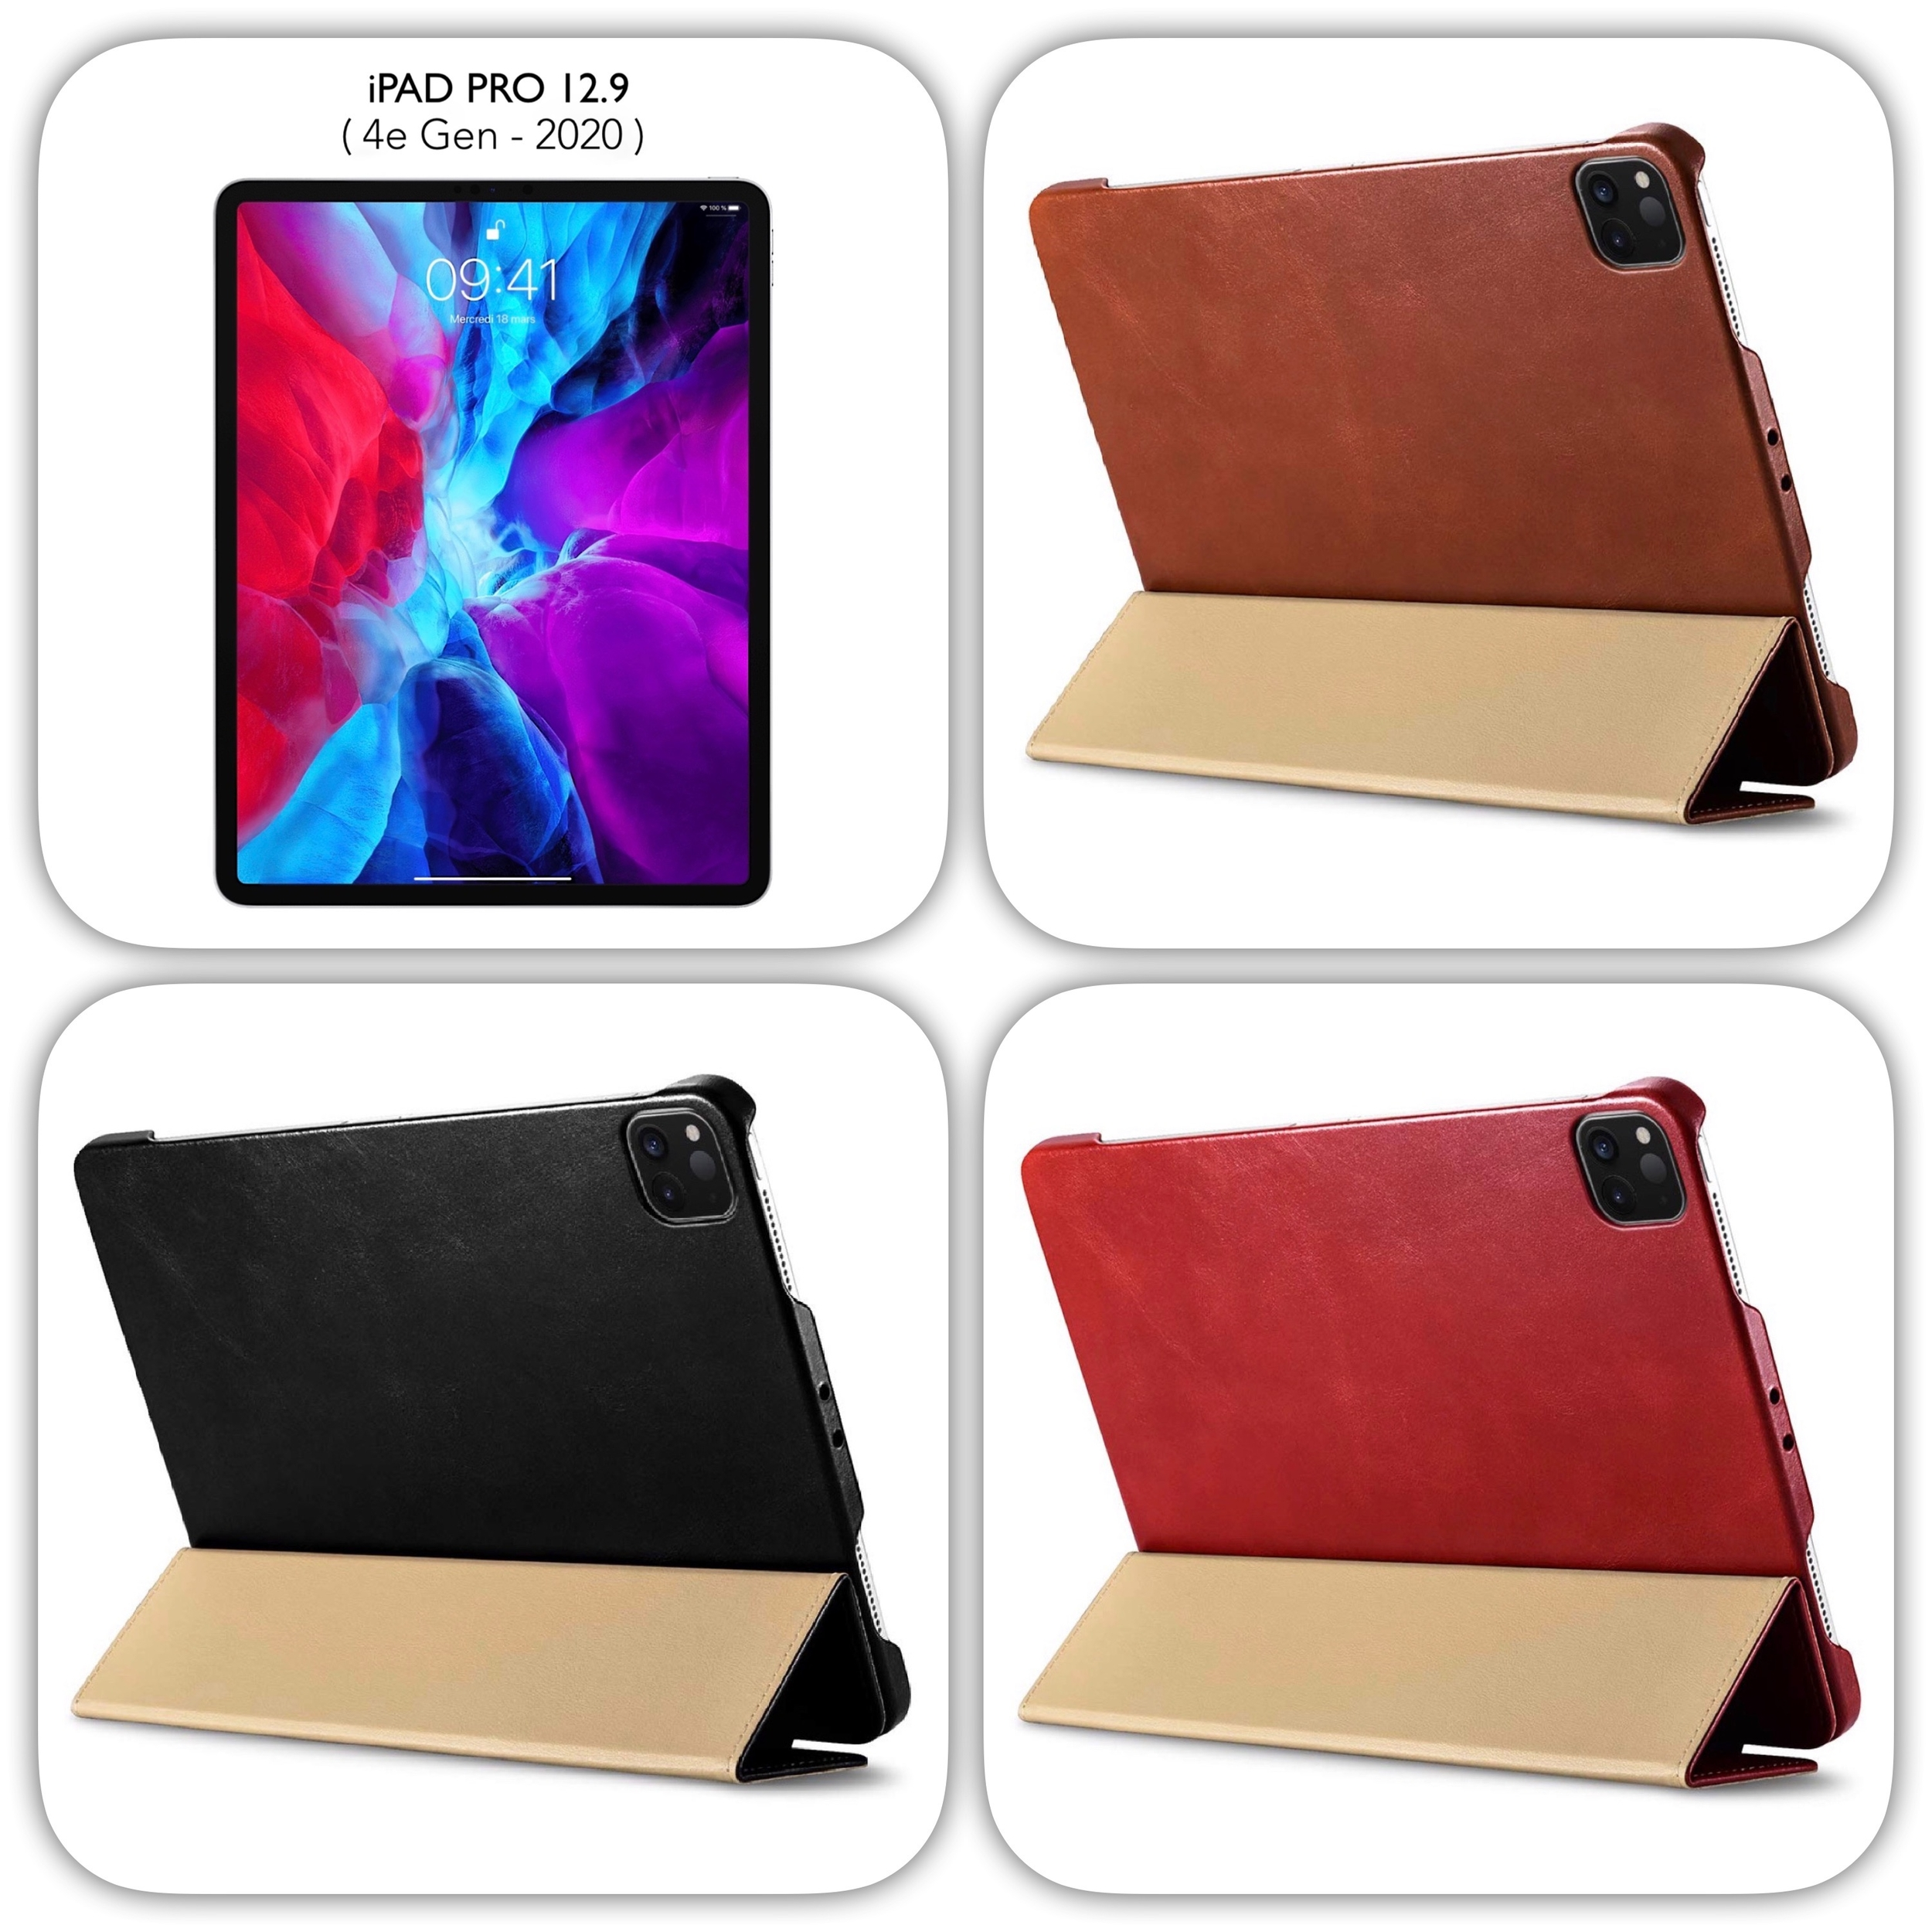 Pack Duo iPAD PRO 2020 12.9 Etui Folio Cuir veritable Firenze et verre protection ecran